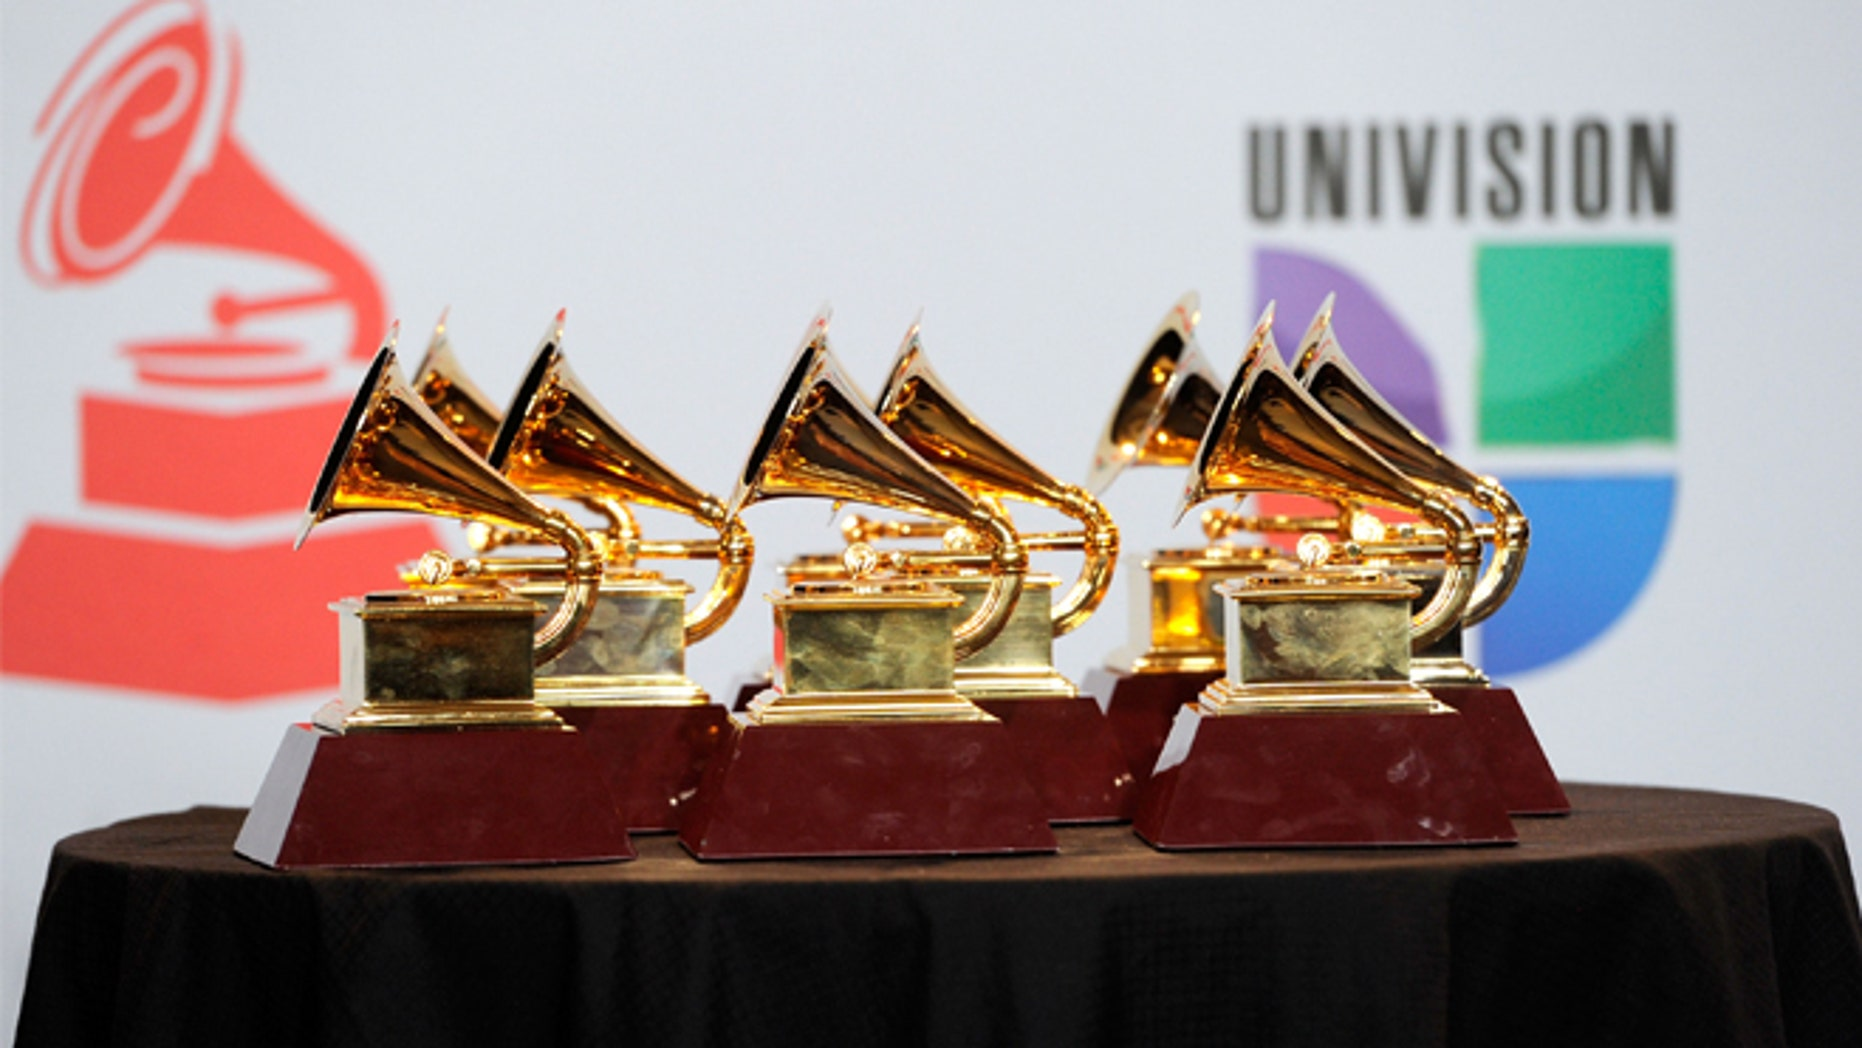 LAS VEGAS, NV - NOVEMBER 10:  A general view of the atmosphere in the press room during the 12th annual Latin GRAMMY Awards at the Mandalay Bay Resort & Casino on November 10, 2011 in Las Vegas, Nevada.  (Photo by Ethan Miller/Getty Images)